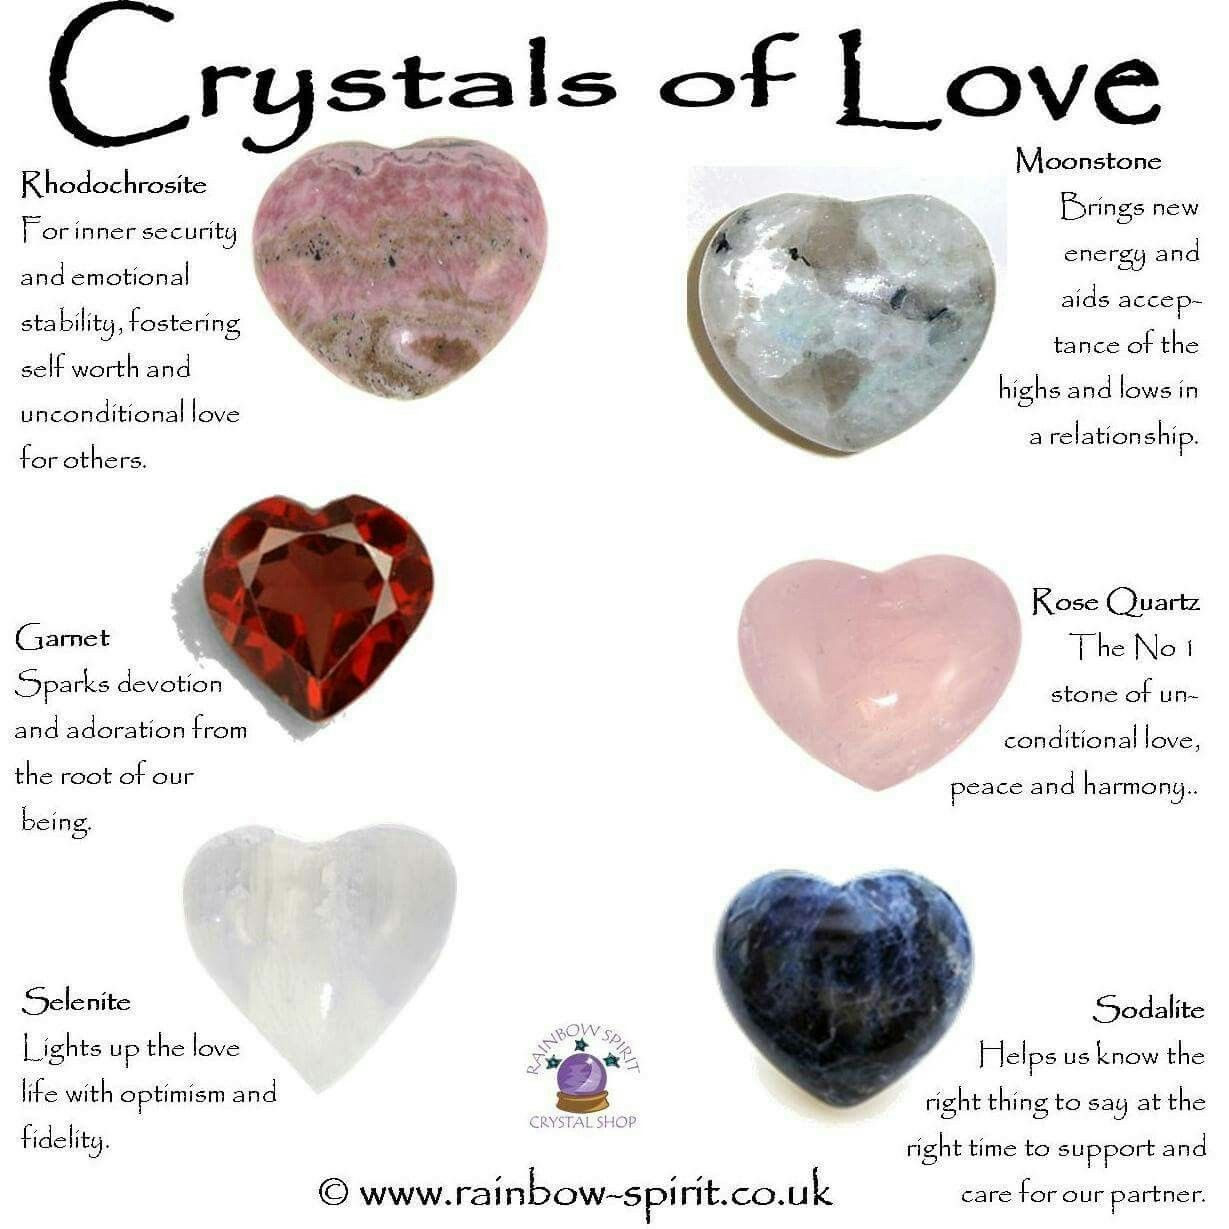 Pin By Jazzy C On Crystals Stones Spiritual Crystals Crystal Healing Stones Crystals